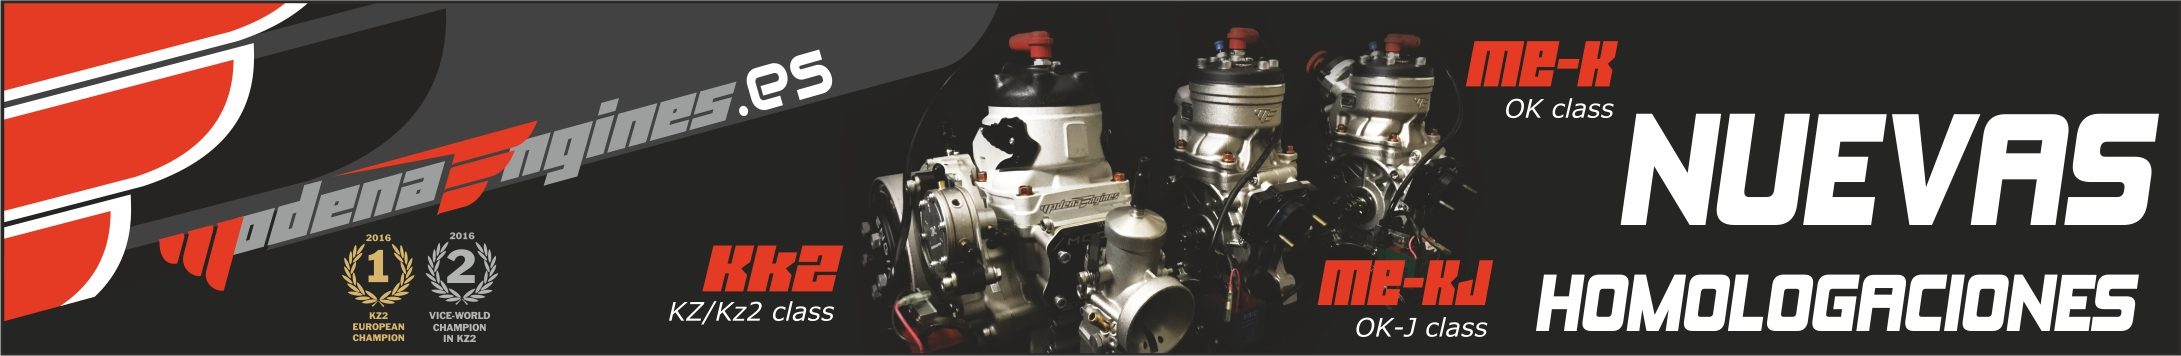 encabezado modena engines.jpg